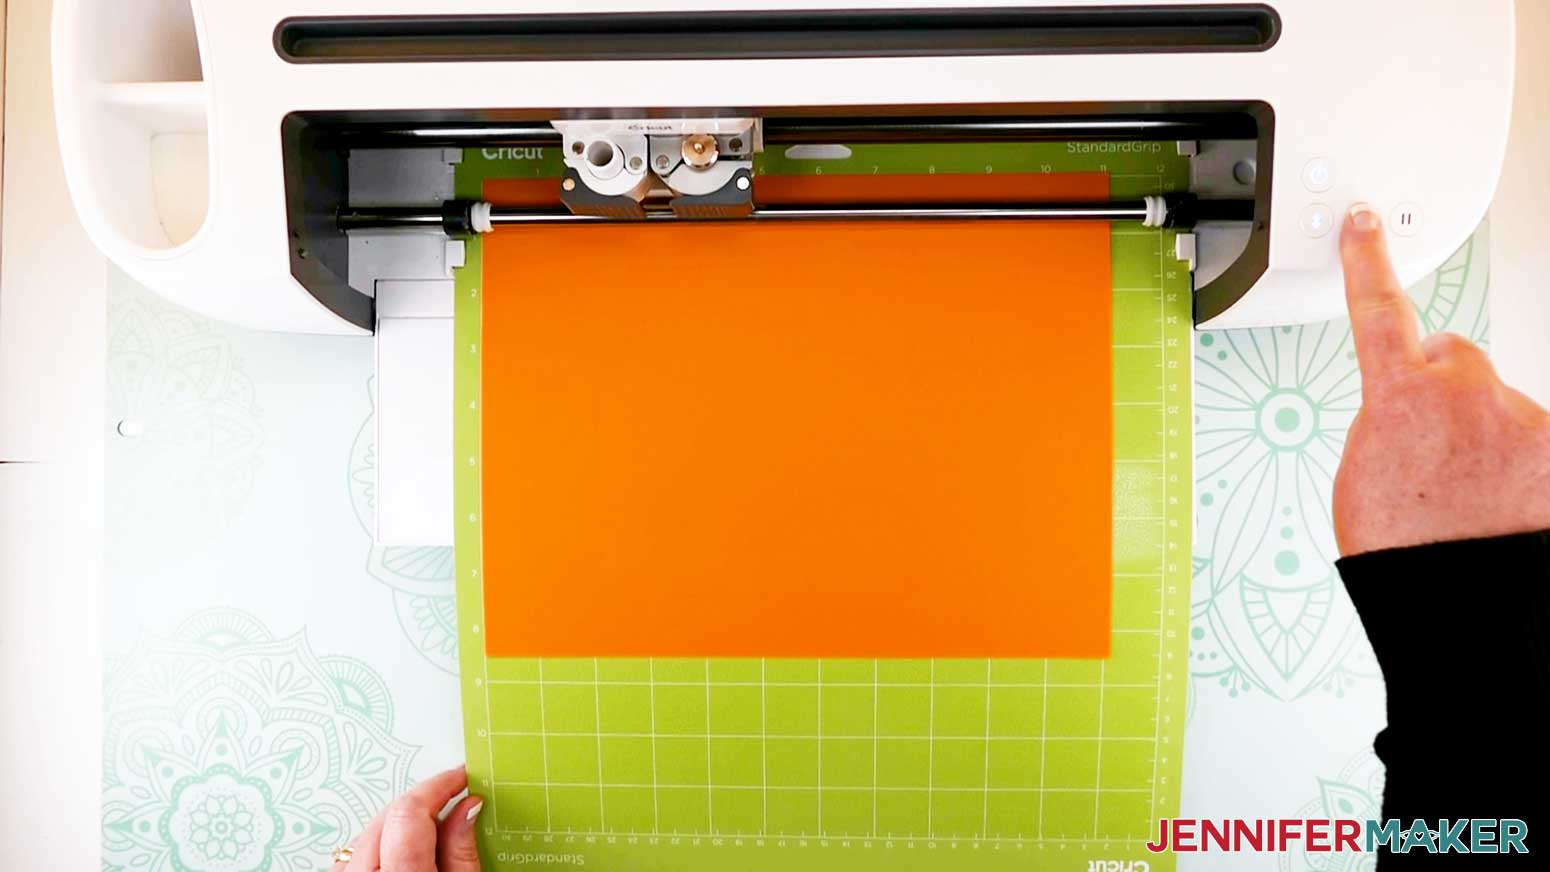 pressing start button on cricut machine for paper flower letter project